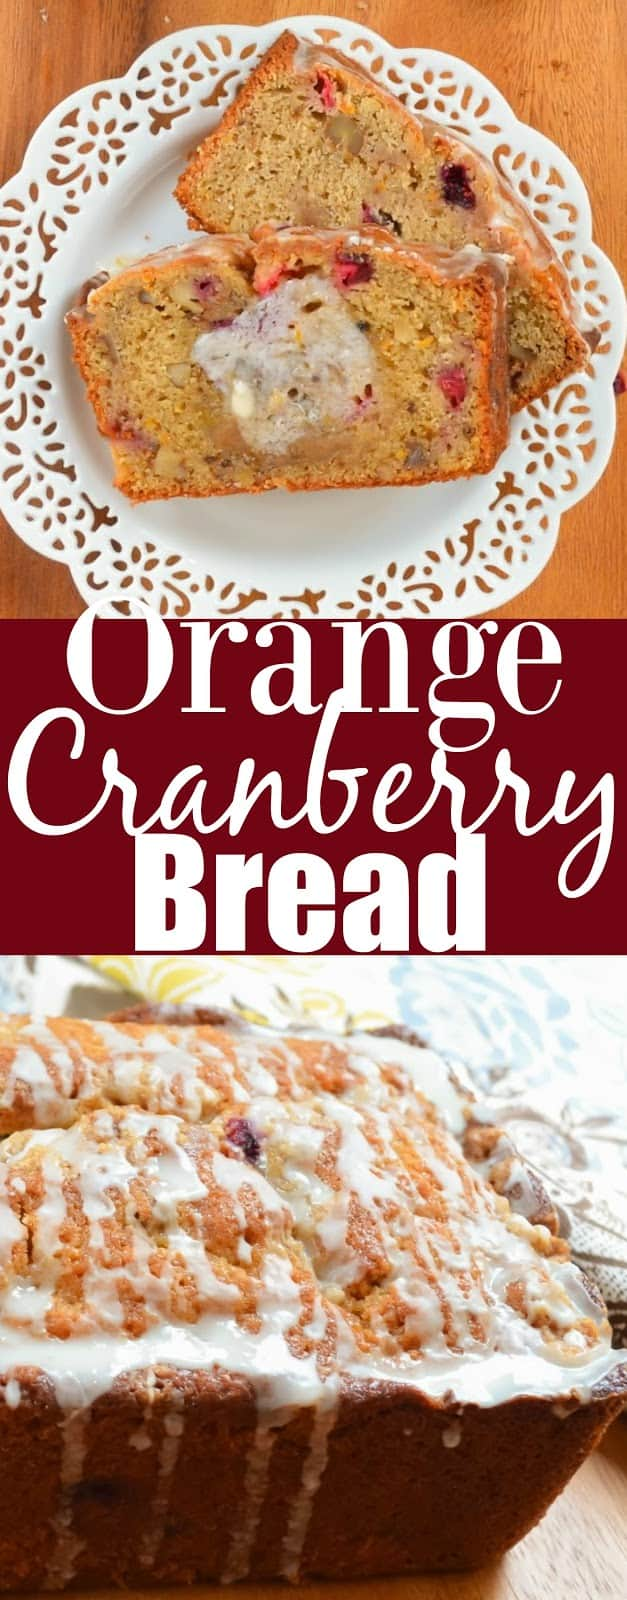 Orange Cranberry Bread with Brown Sugar Crumb and Orange Glaze from Serena Bakes Simply From Scratch.